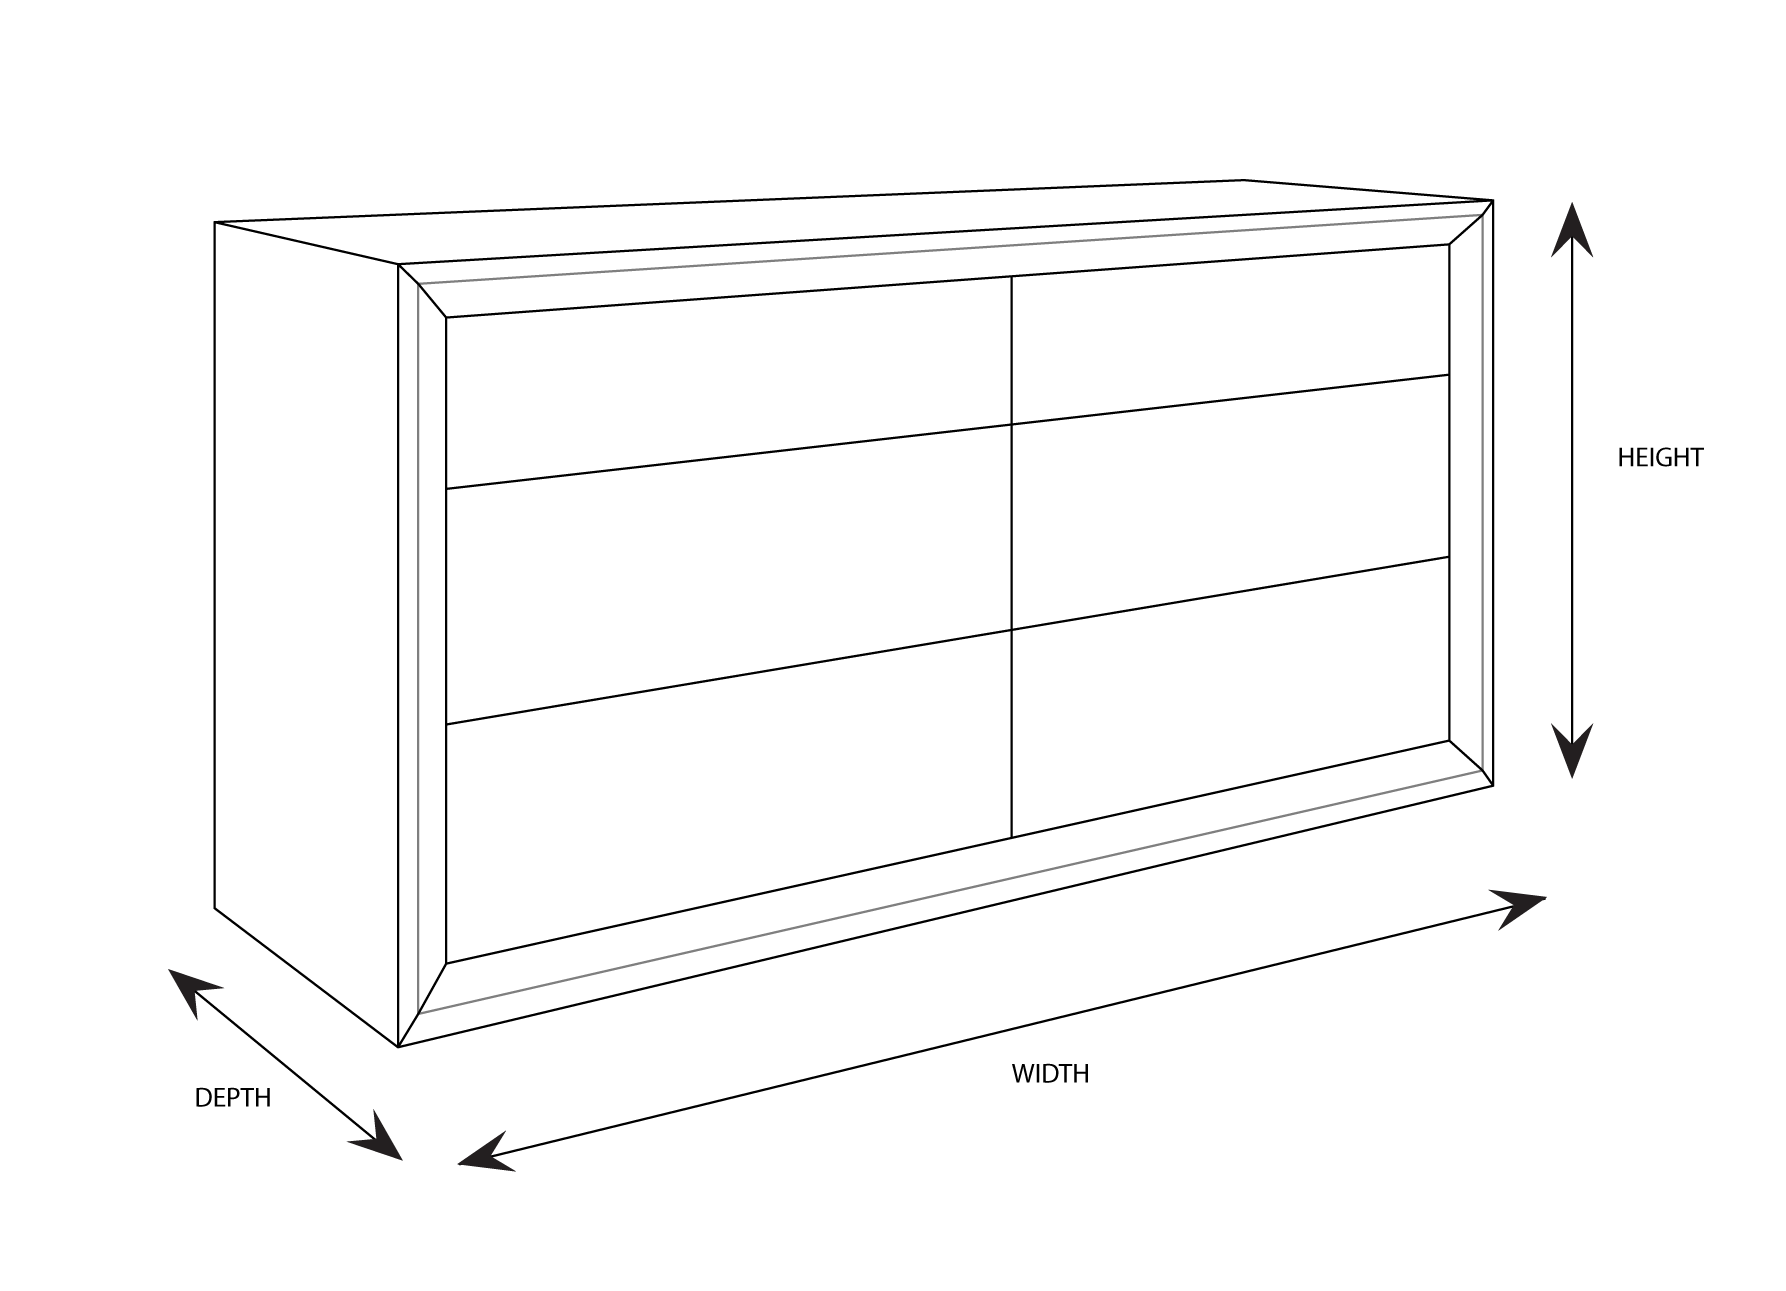 Clempton 6 Drawer Dimensional Drawing